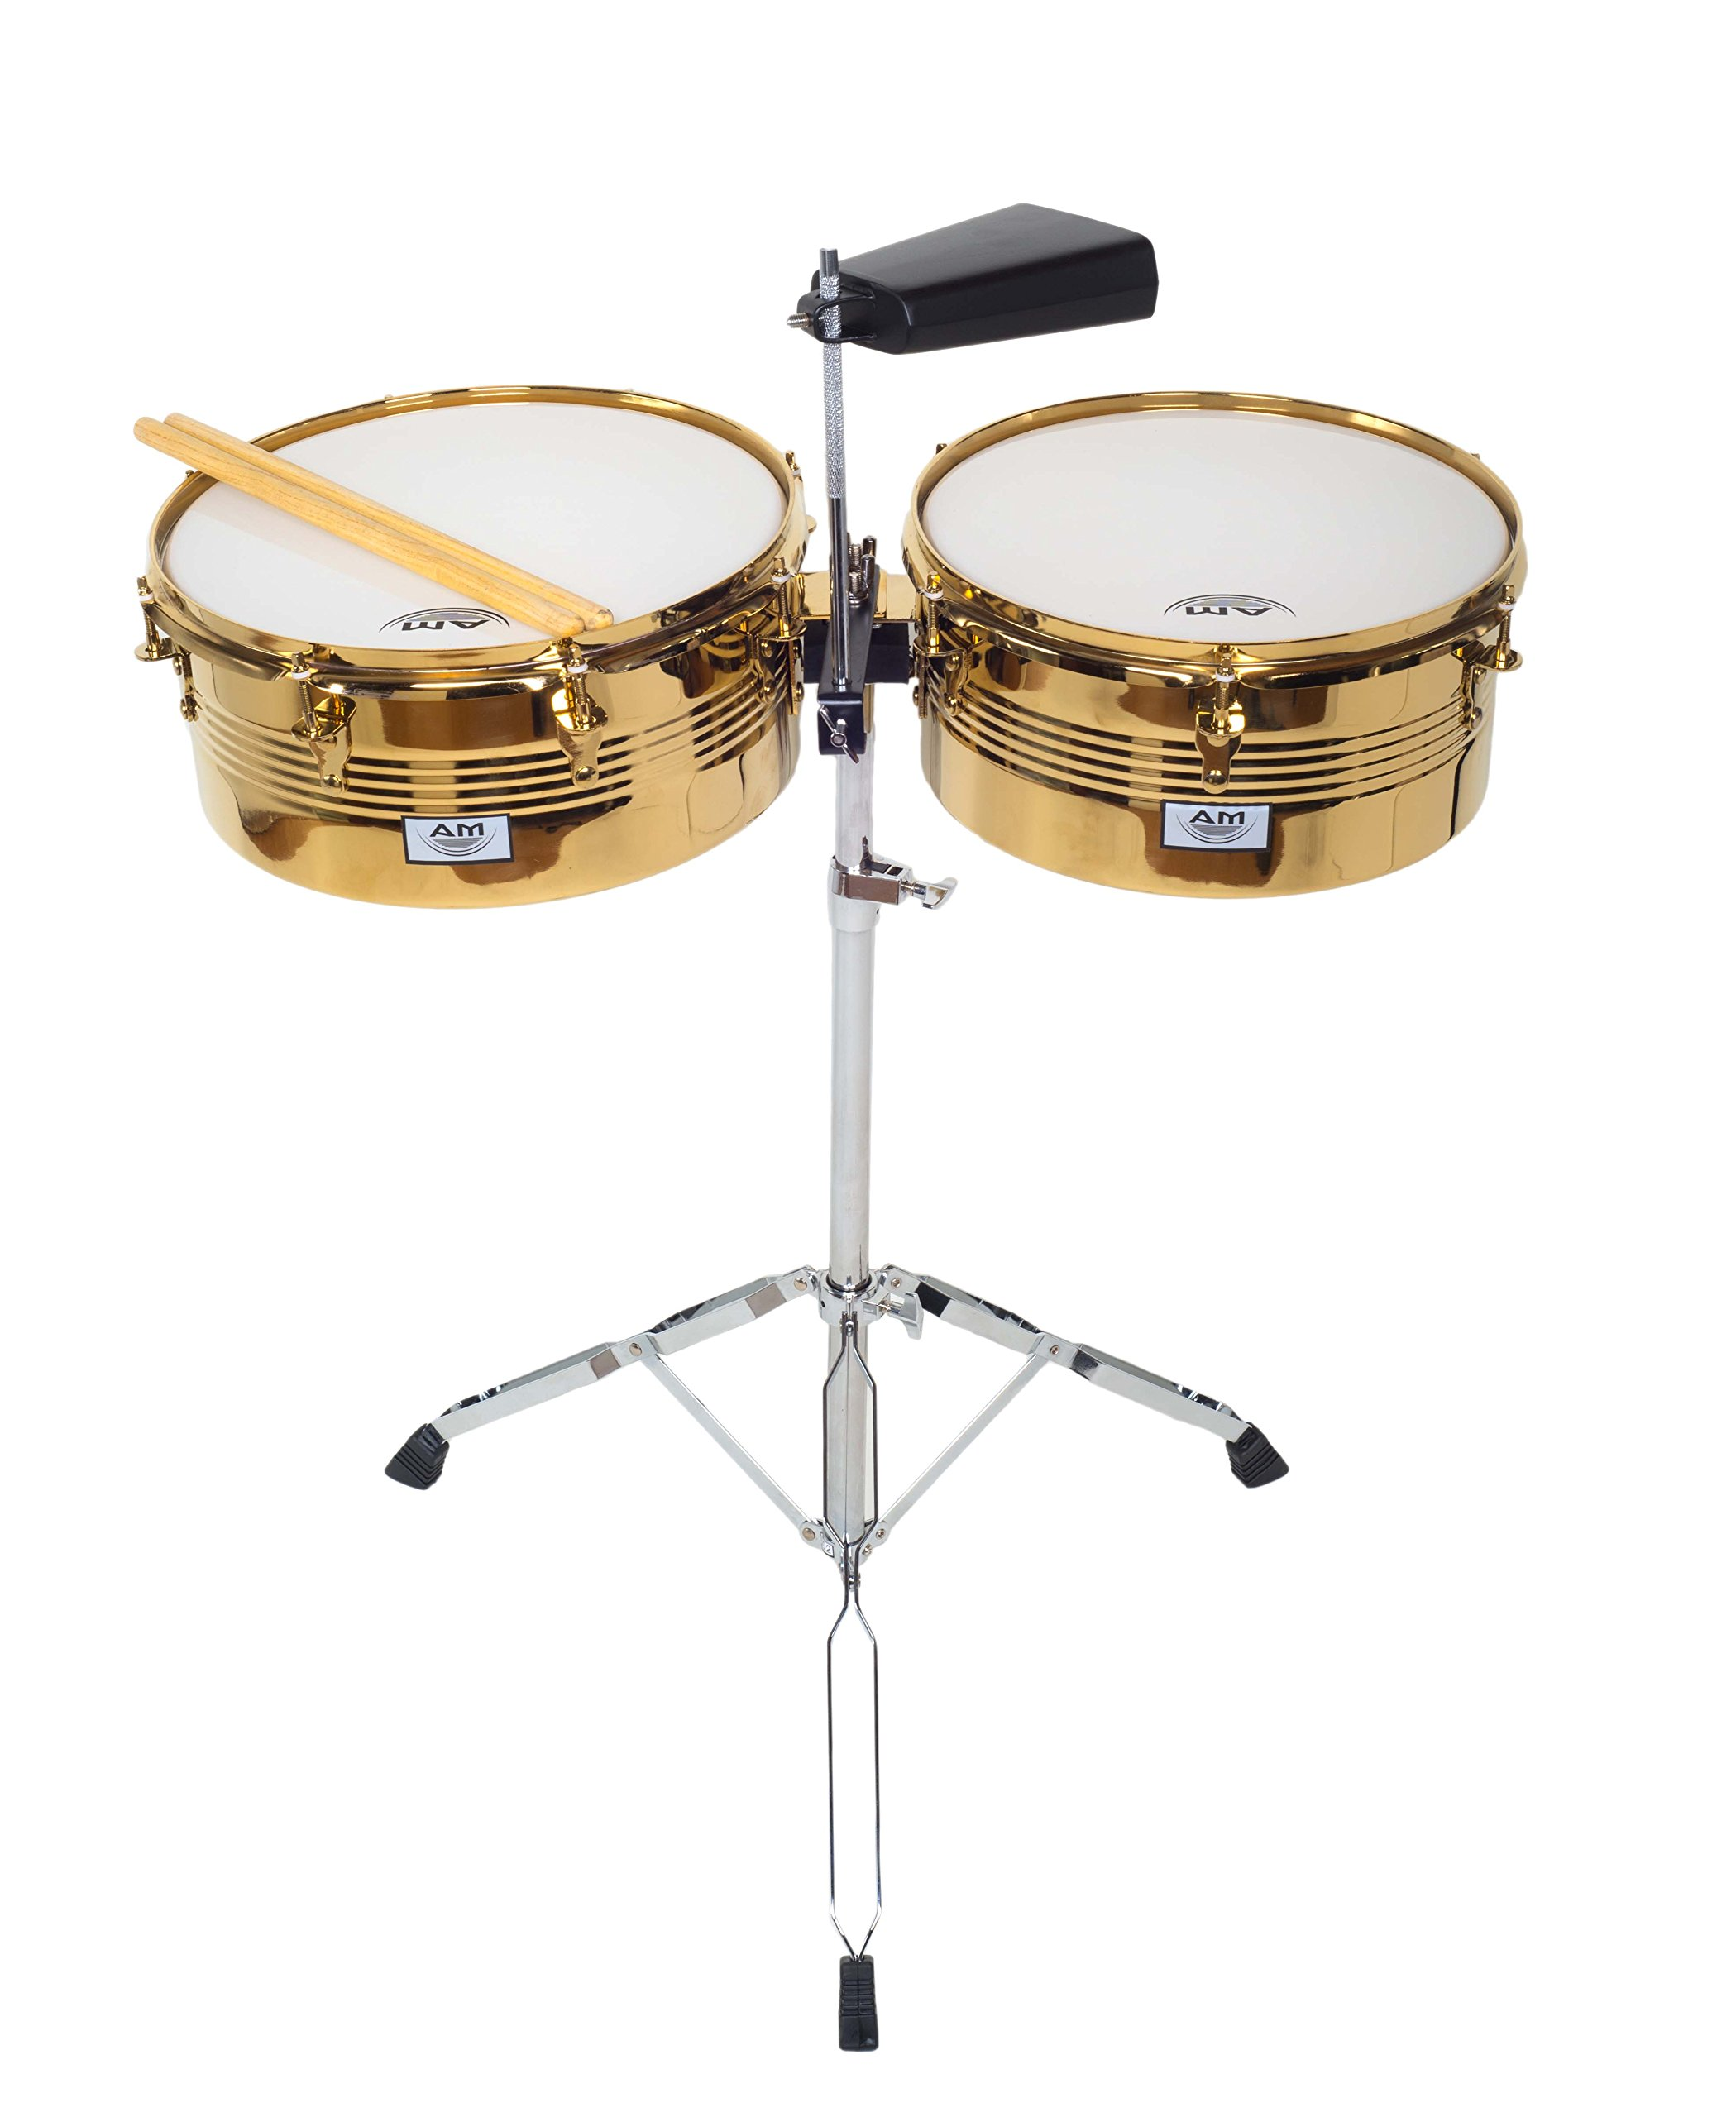 AM Percussion LIBRE GX2 Timbale Set GOLD CHROME with Cowbell, Durable Double Braced Stand and Drum Sticks